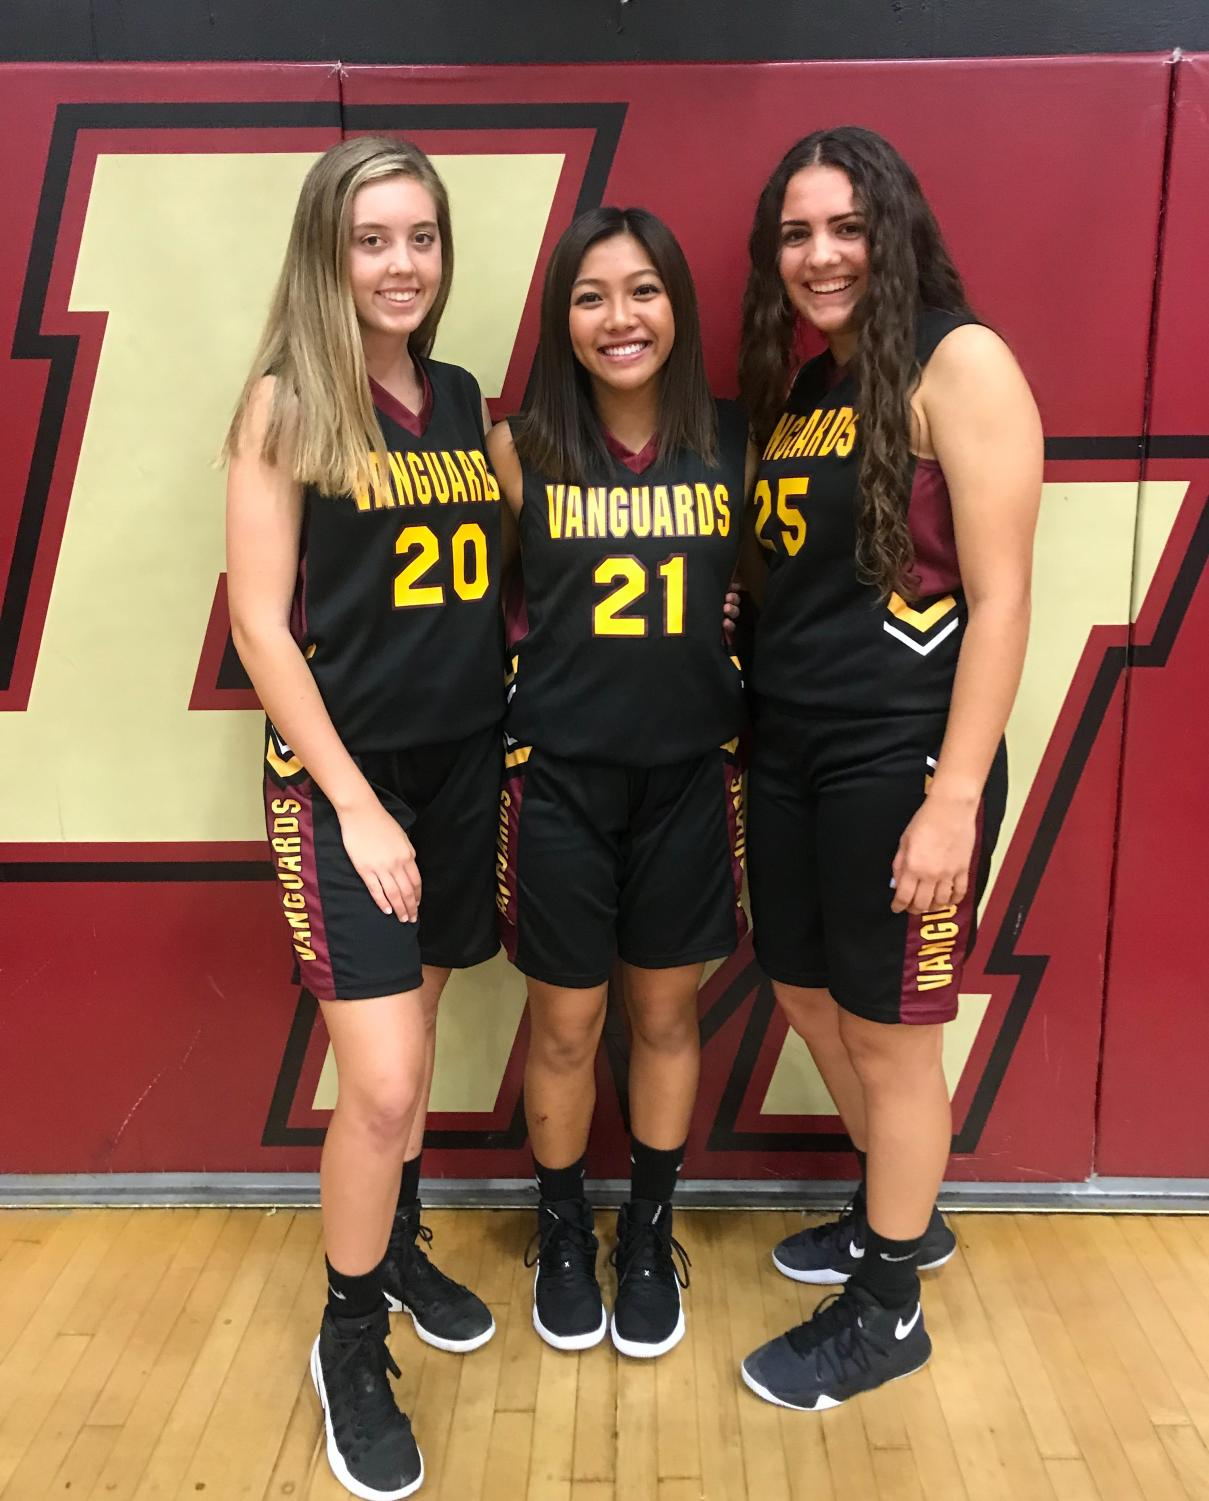 From right-to-left: Abby Capra, Mikayla Reyes, and Allyson Conner